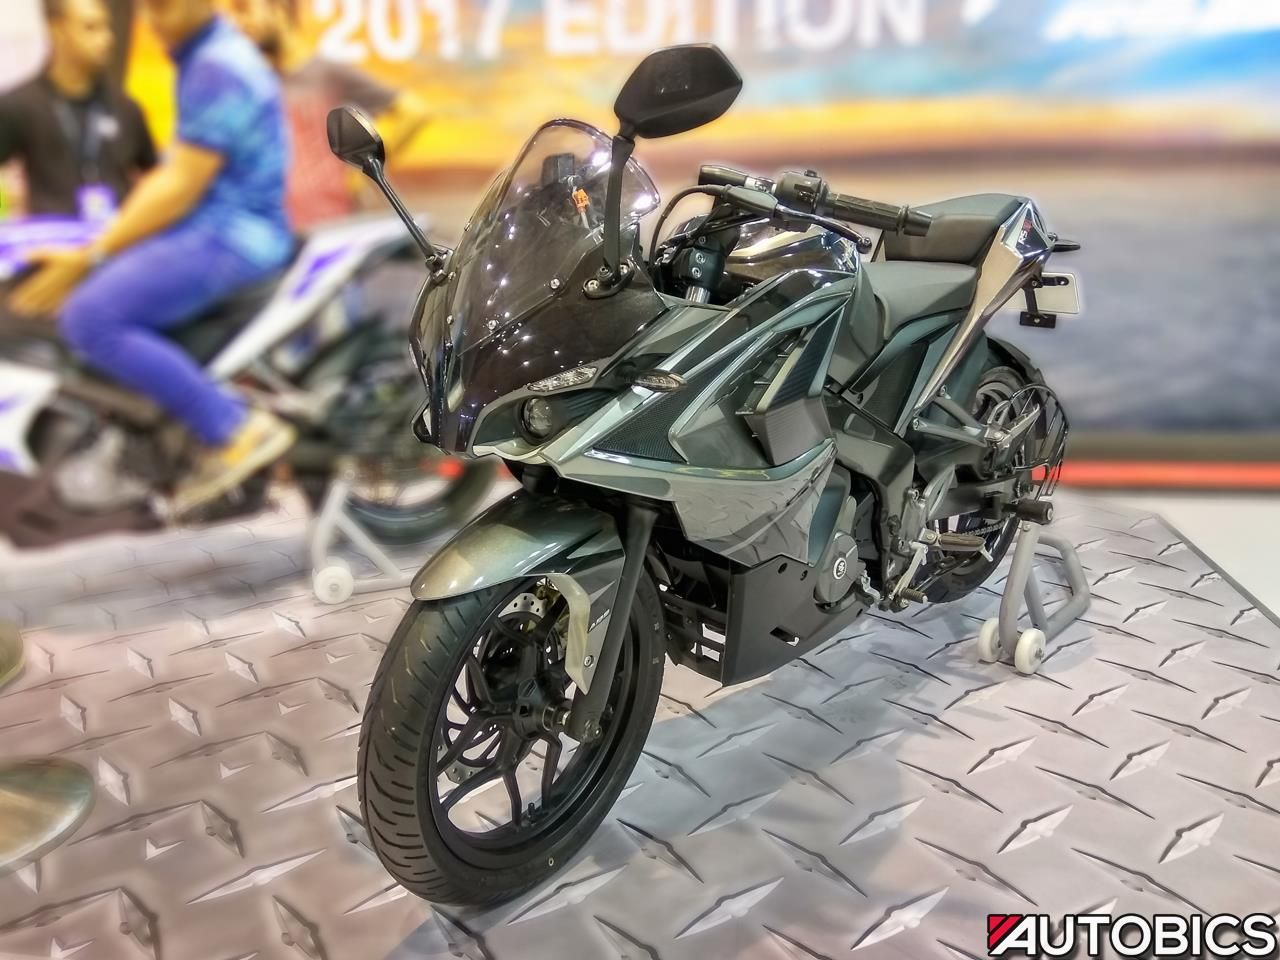 2017 bajaj pulsar launched in india prices start at rs